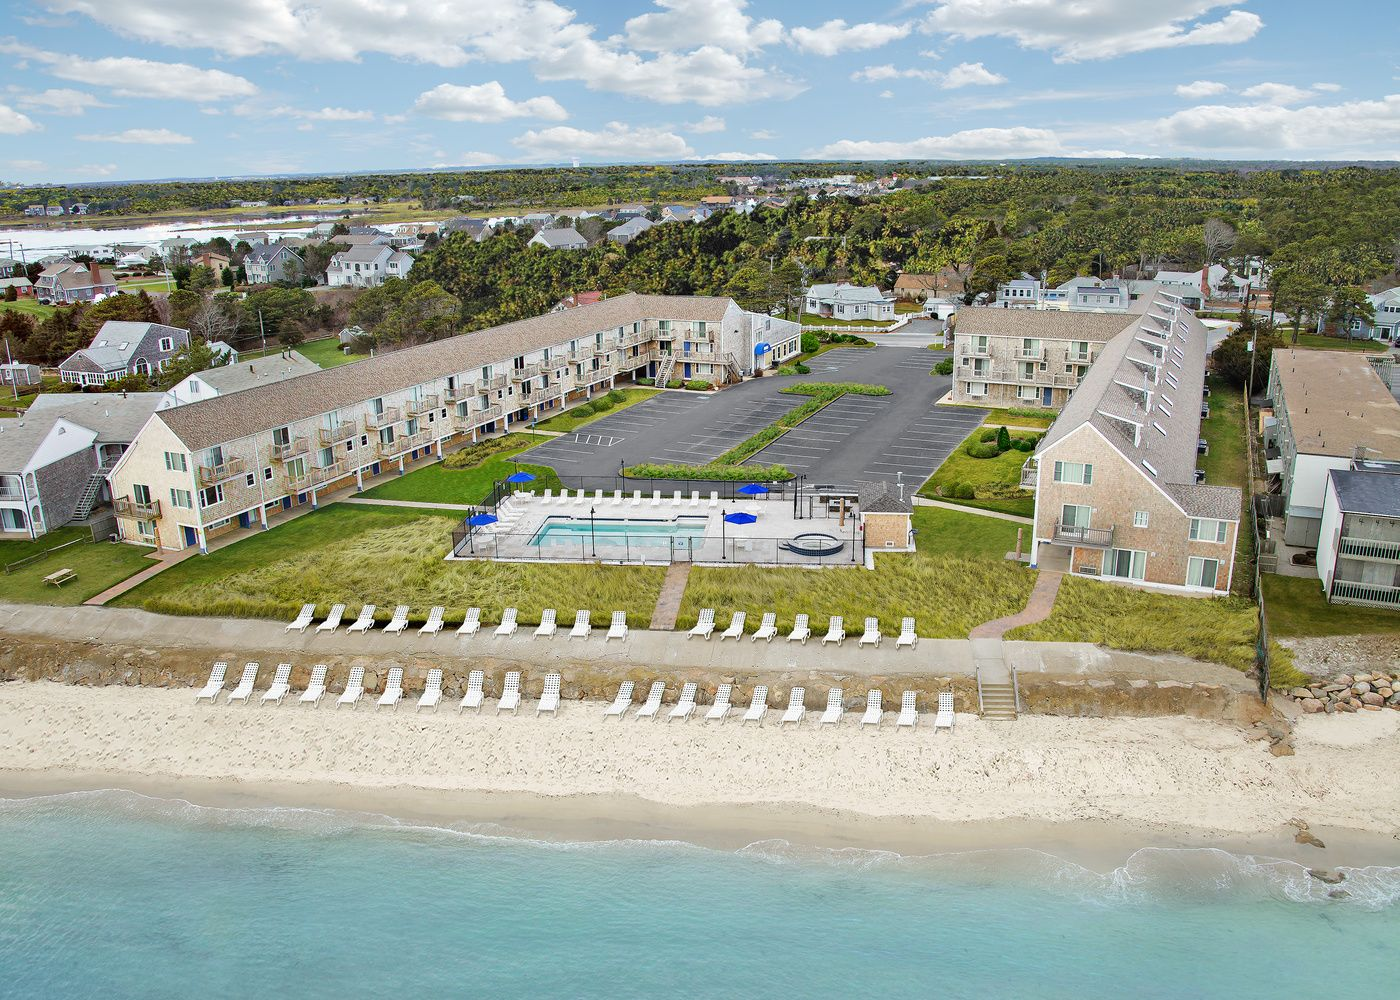 Places To Stay In Cape Cod Ocean Mist Hotel Cape Cod Ma South Yarmouth Beach Hotels Ocean Mist